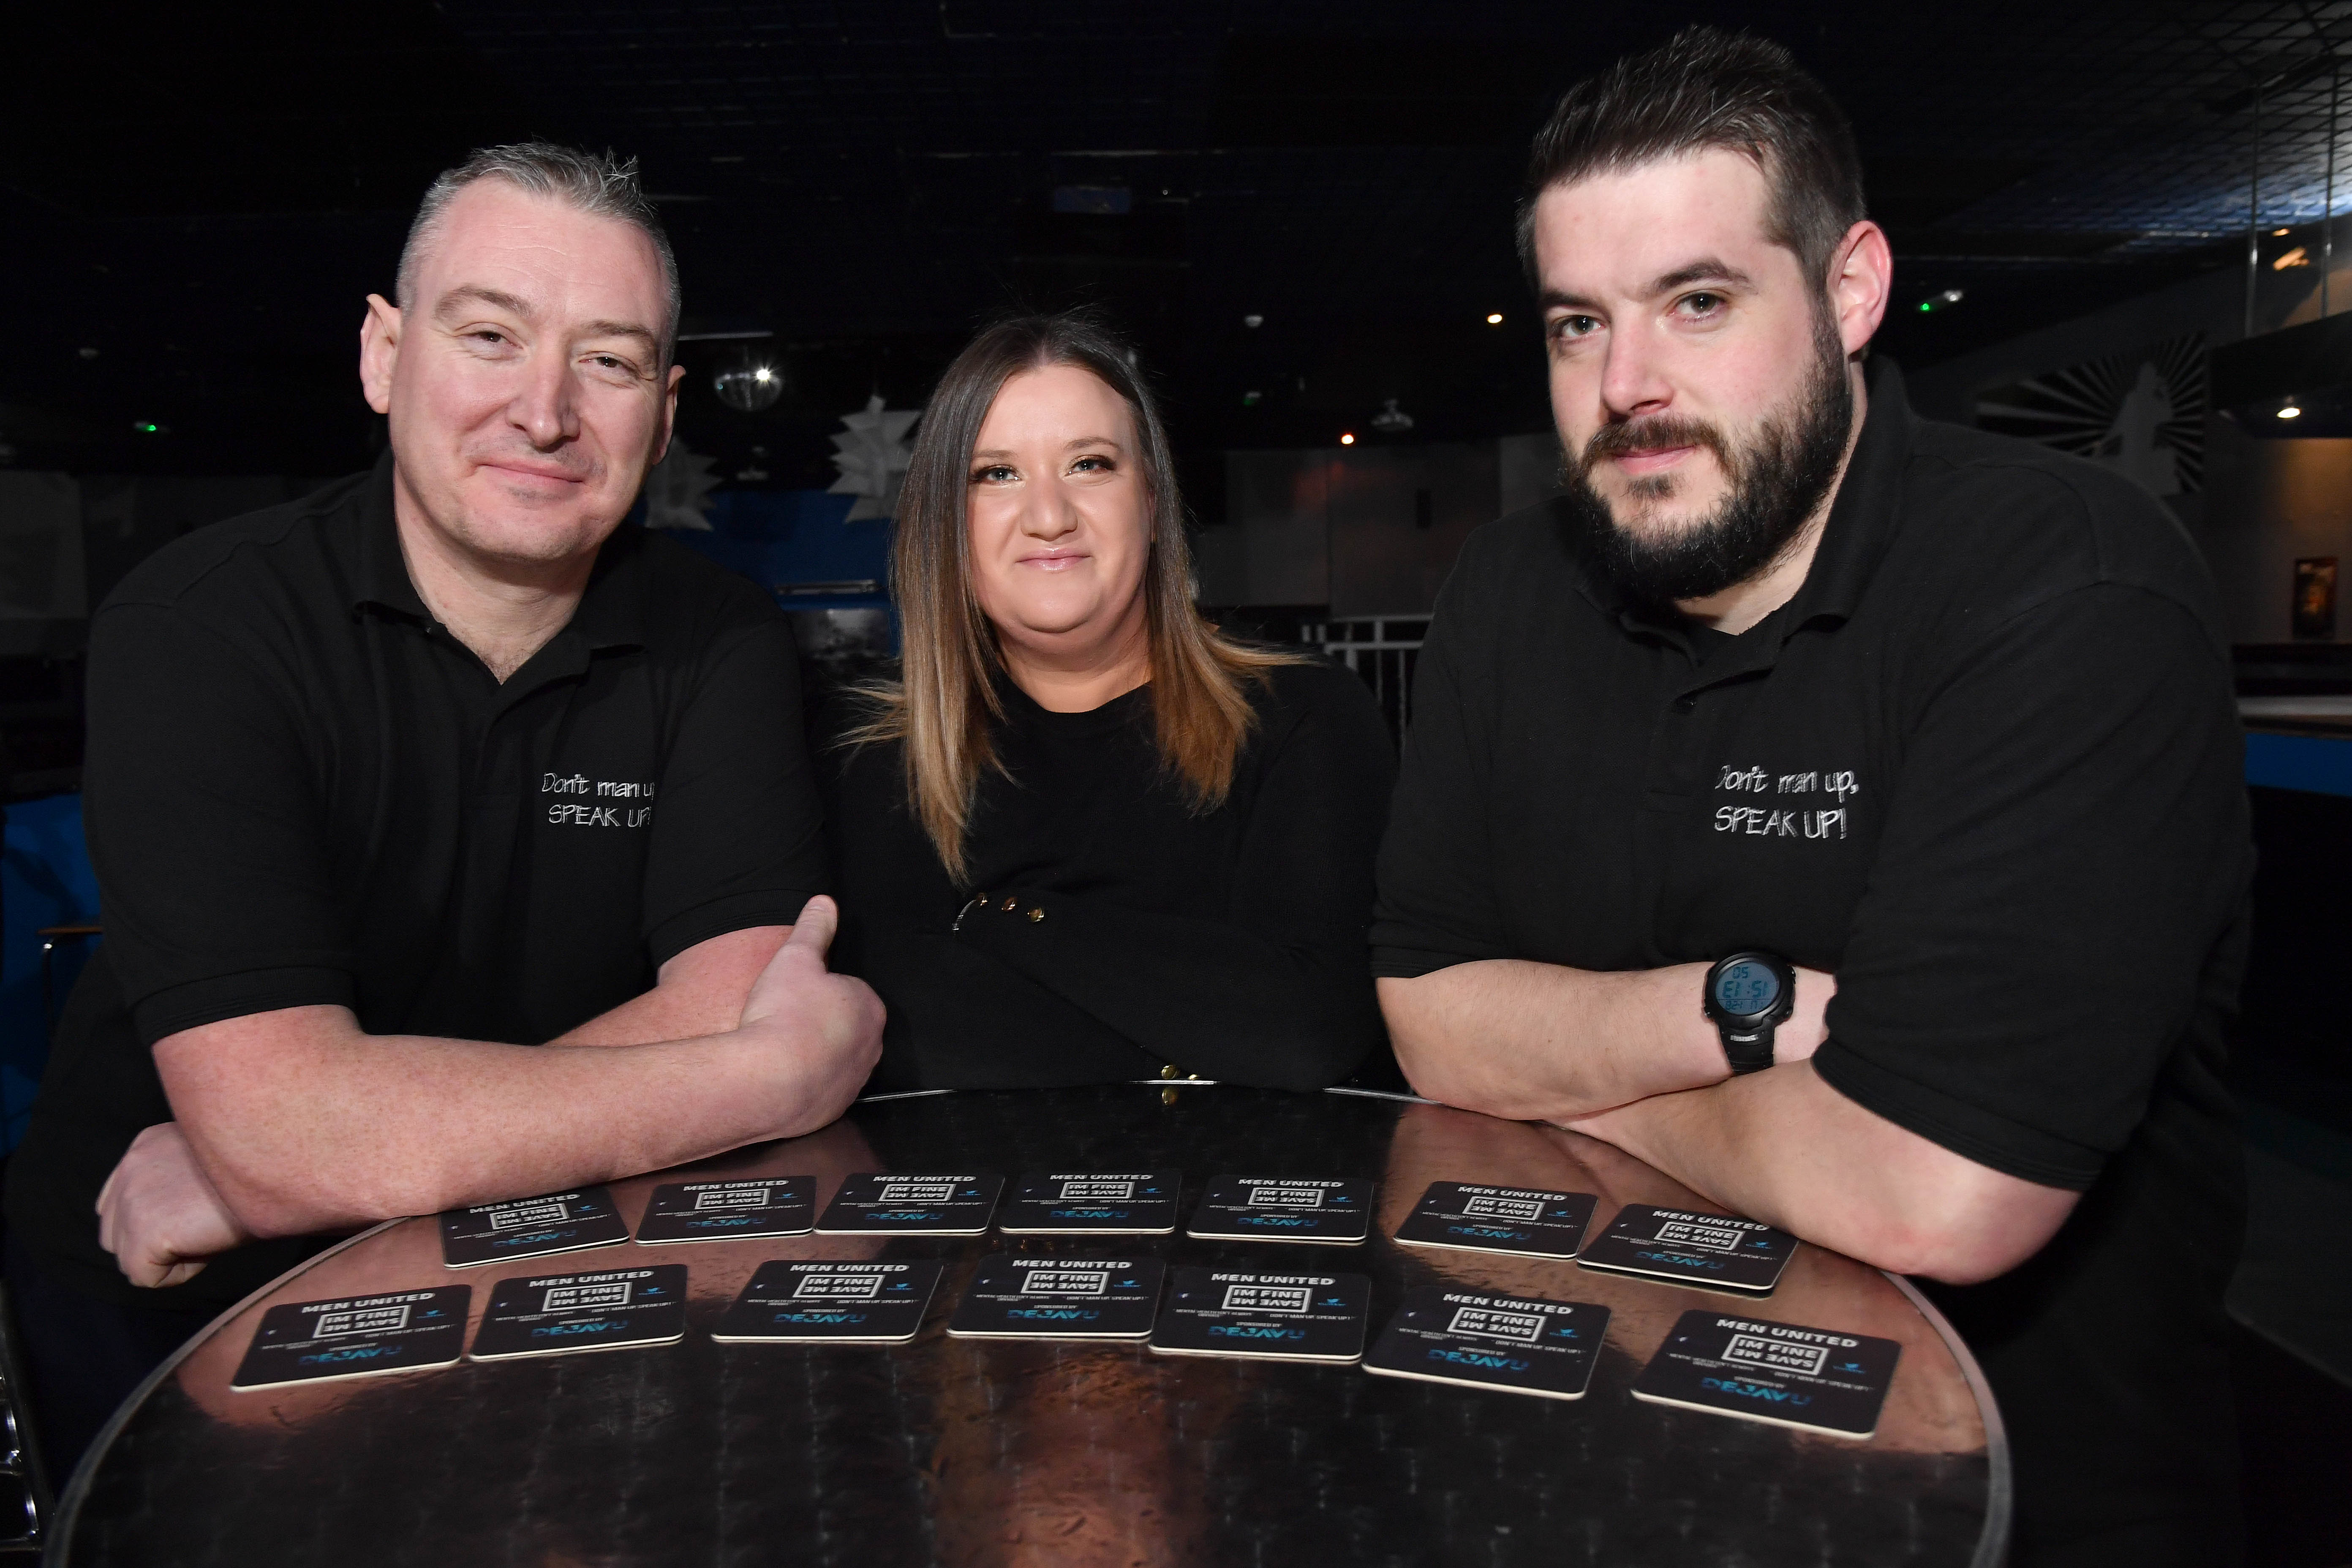 MEN UNITED'S SANDY GARVOCK (L) AND AARON RITCHIE WITH DEJA VU MANAGER NADINE O'ROURKE AND THE NEW BEER MATS.